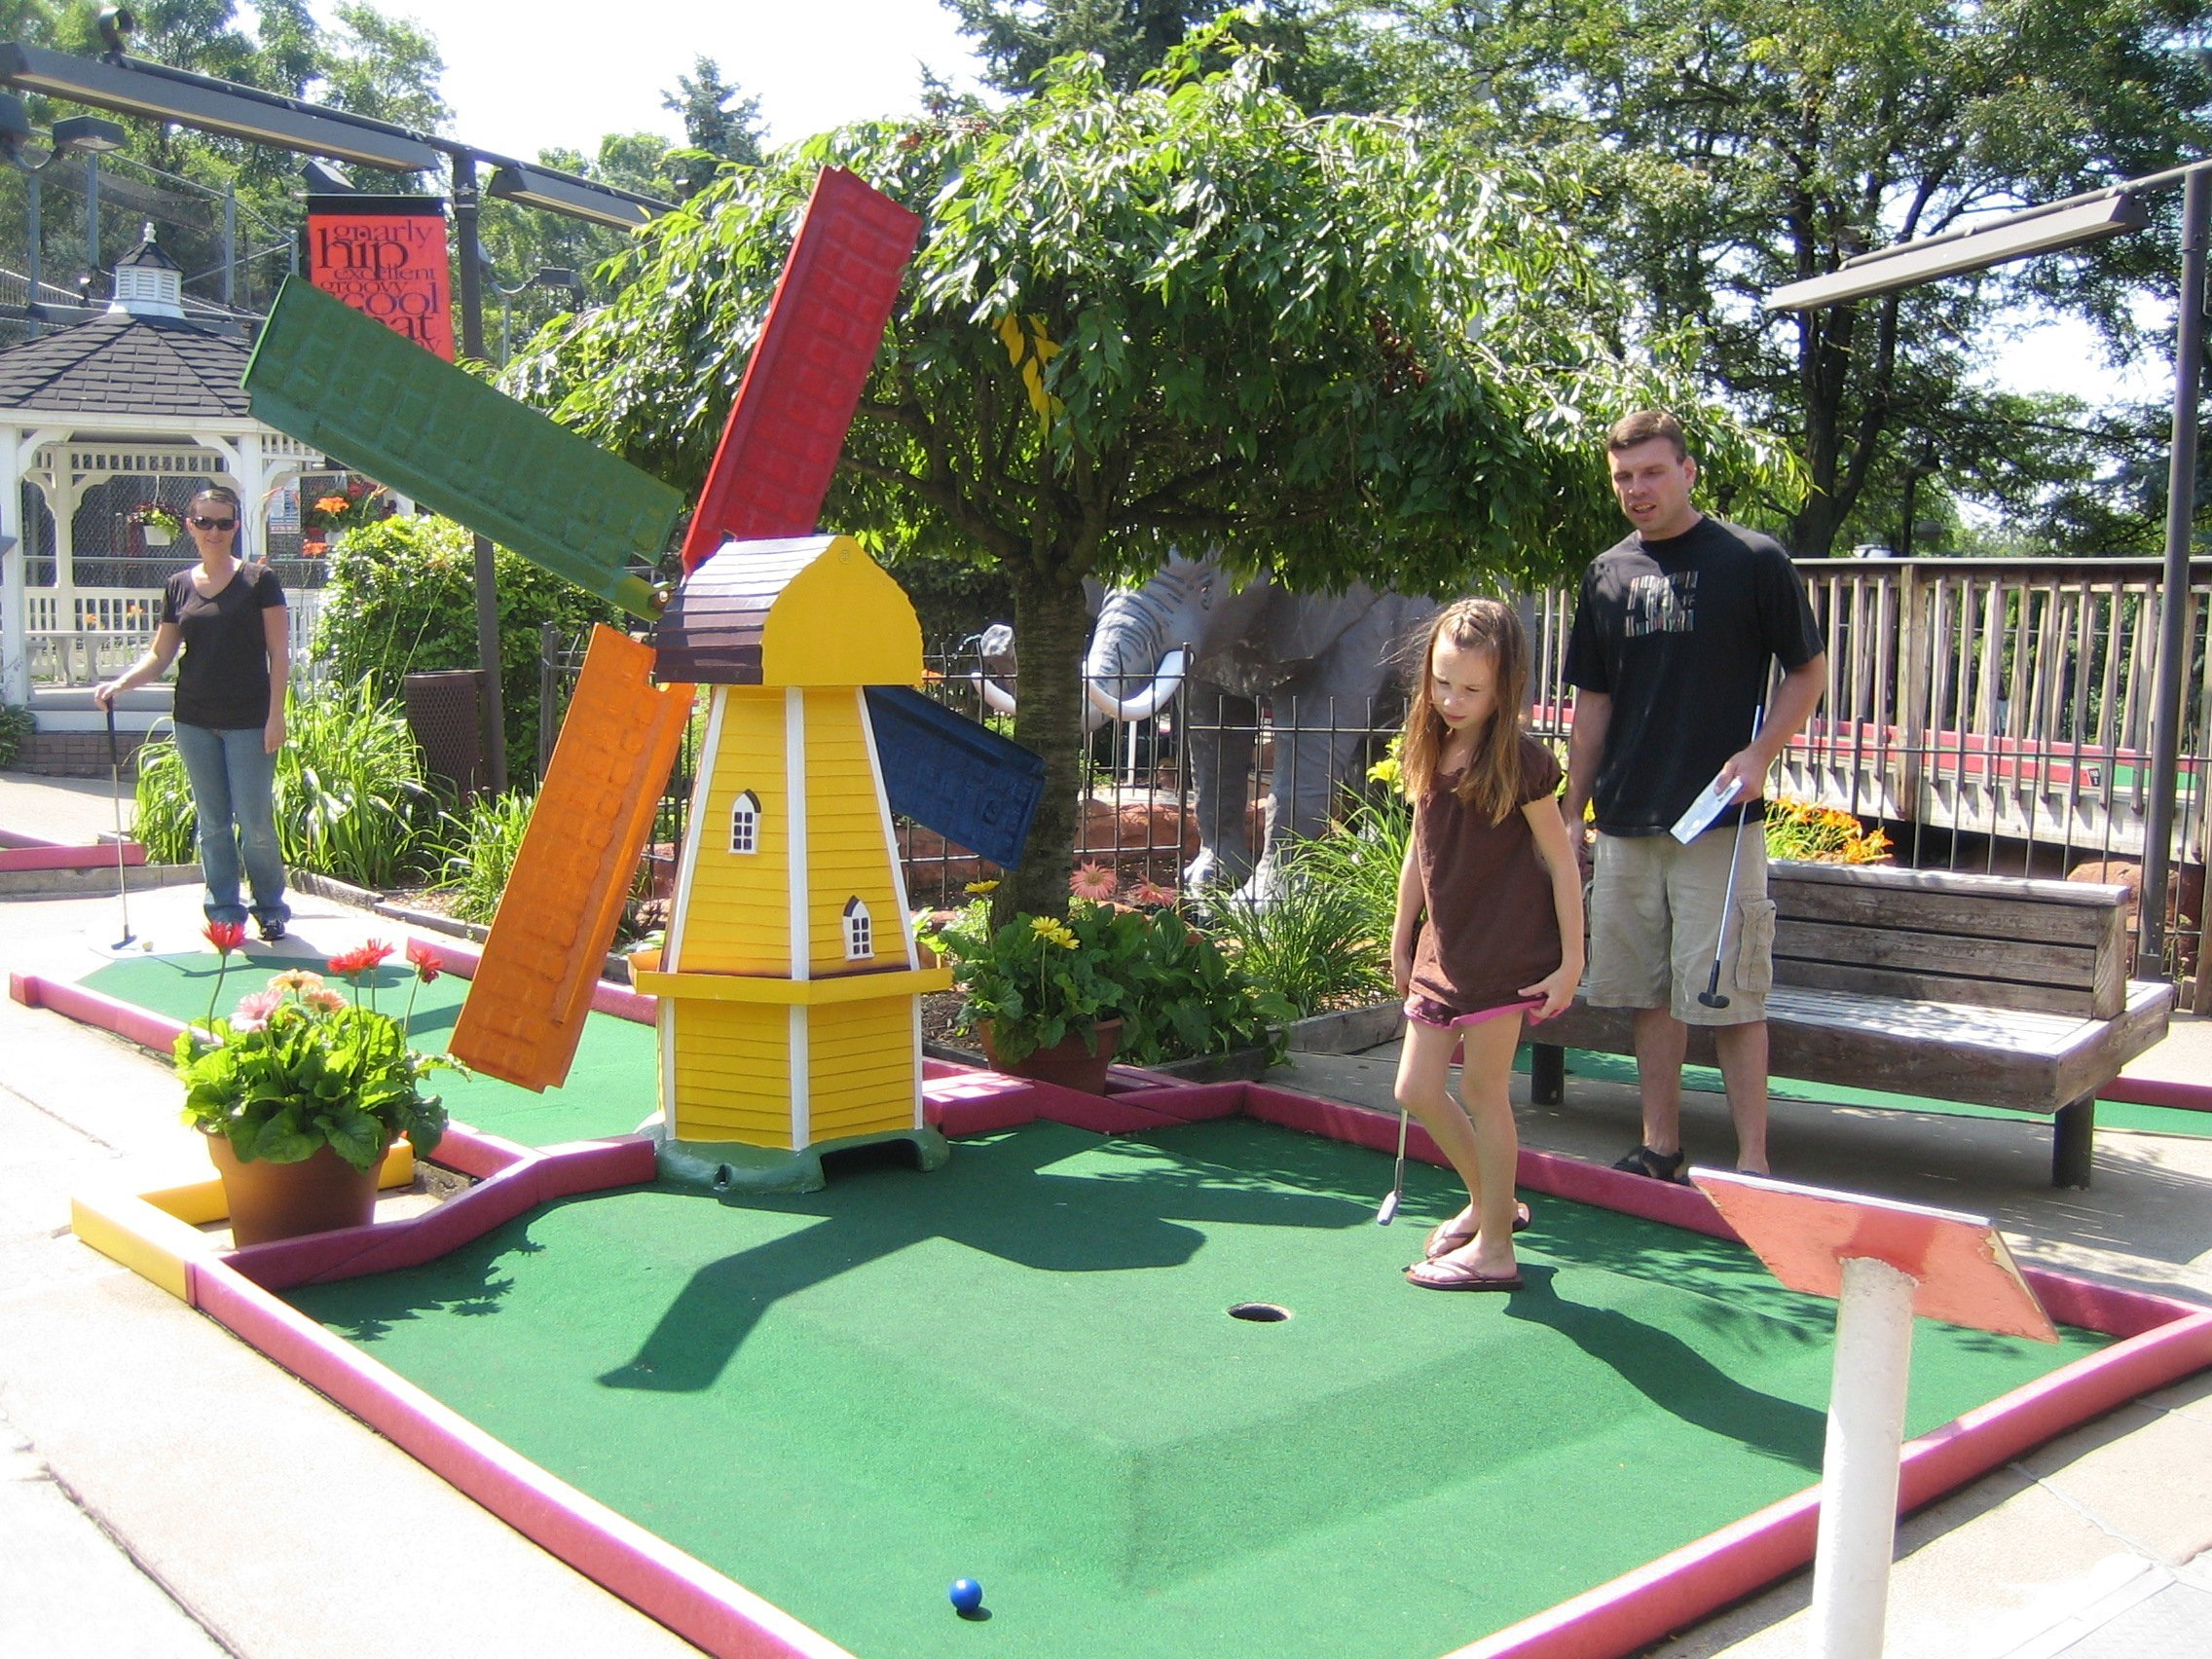 Batter Up: Mini-Golf and Go-Kart <br/>Facilities Score with Batting Cages